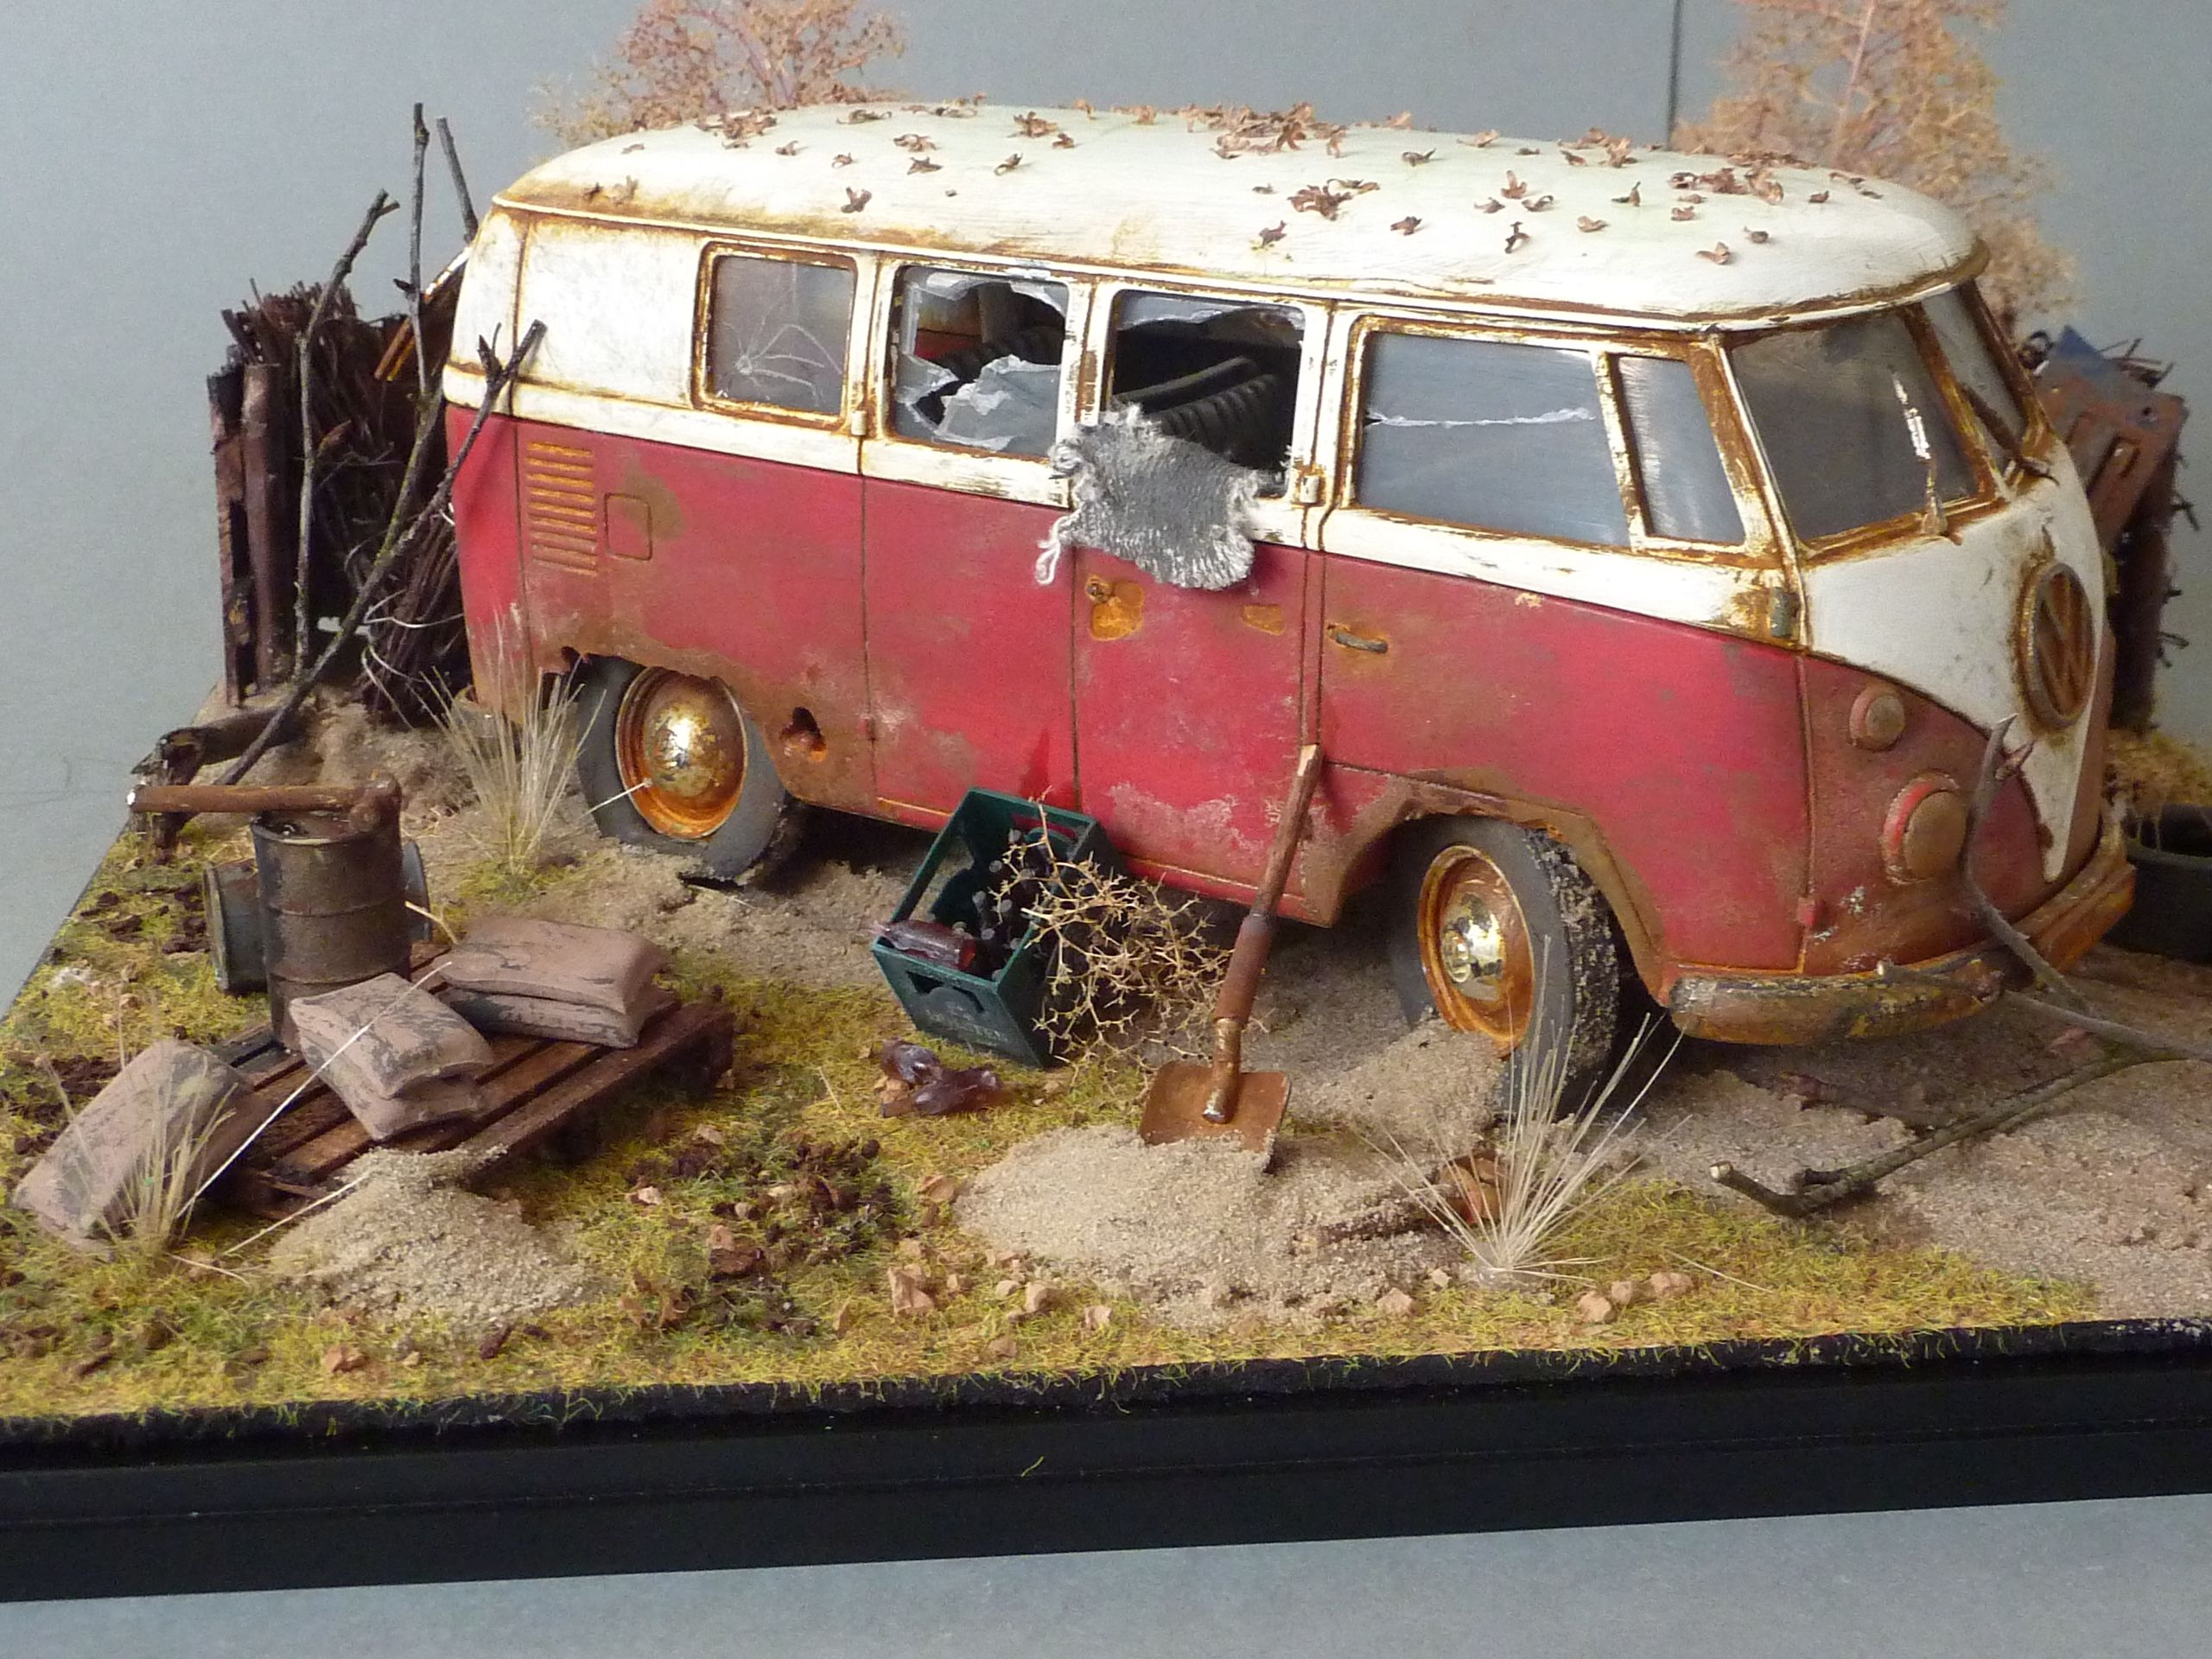 vw type ii bus rusted diorama 1 35 scale diorama models pinterest modellbau miniatur. Black Bedroom Furniture Sets. Home Design Ideas